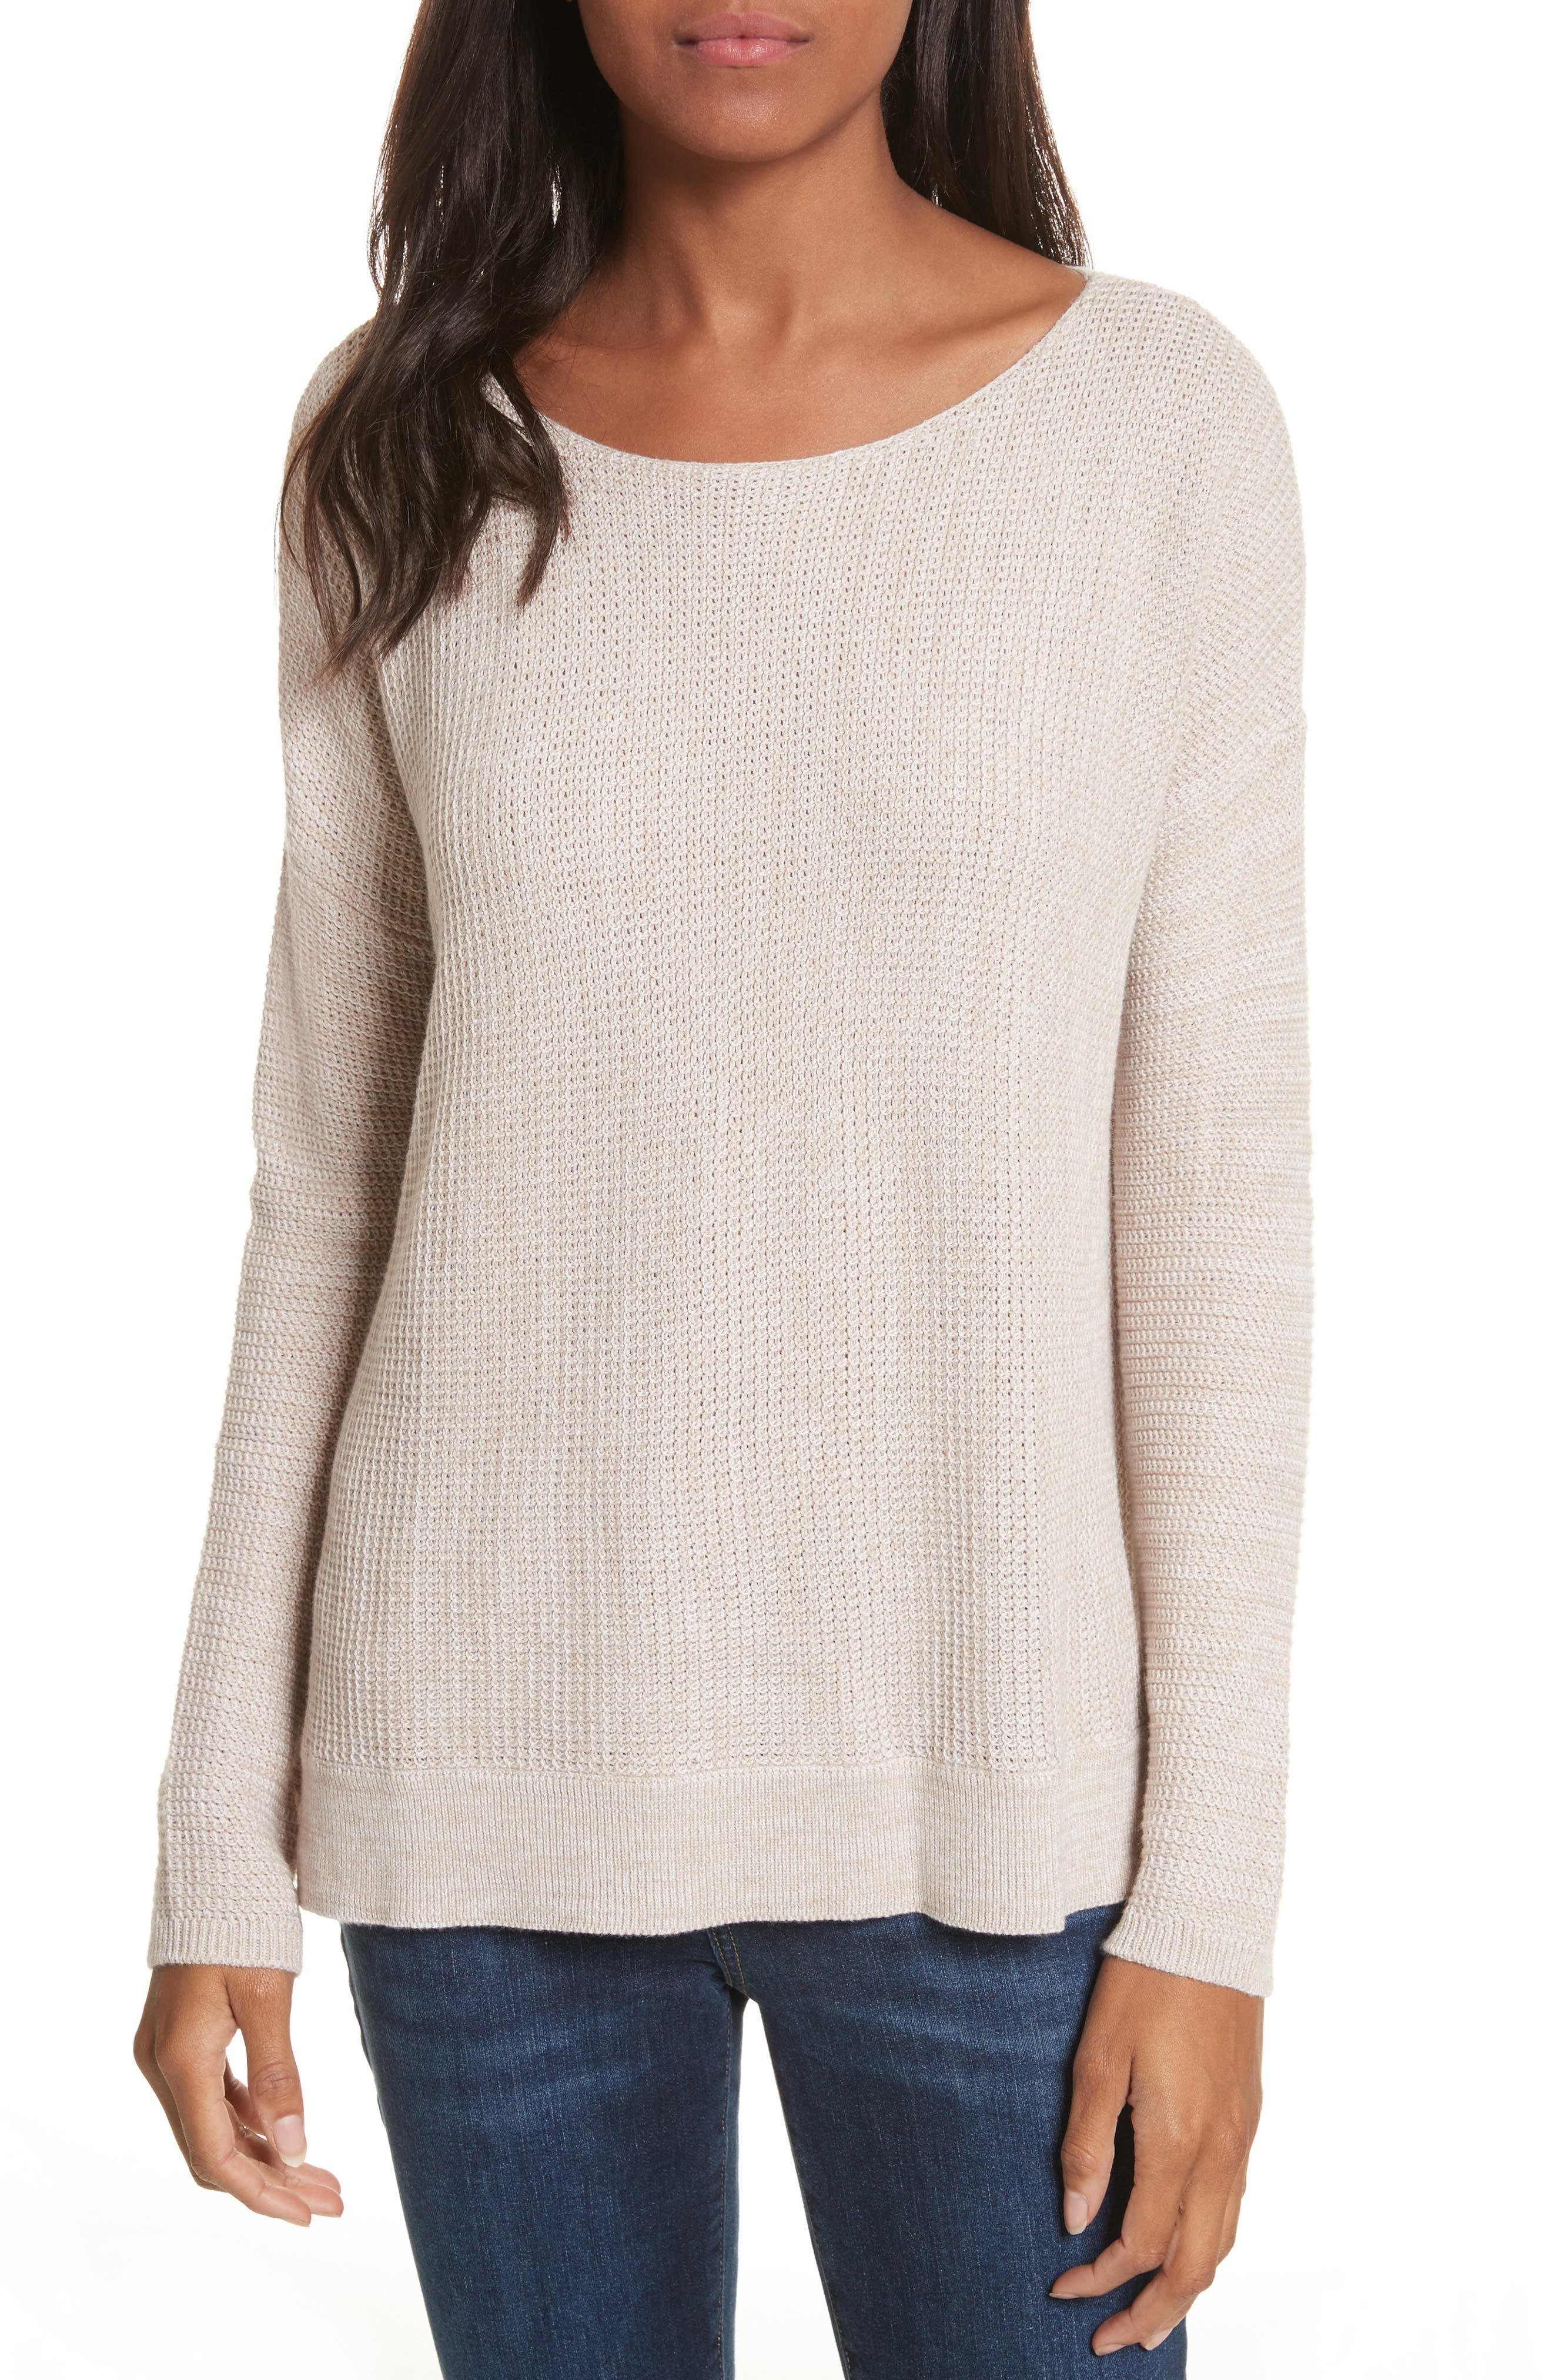 Soft Joie Kashani Pullover,                             Main thumbnail 1, color,